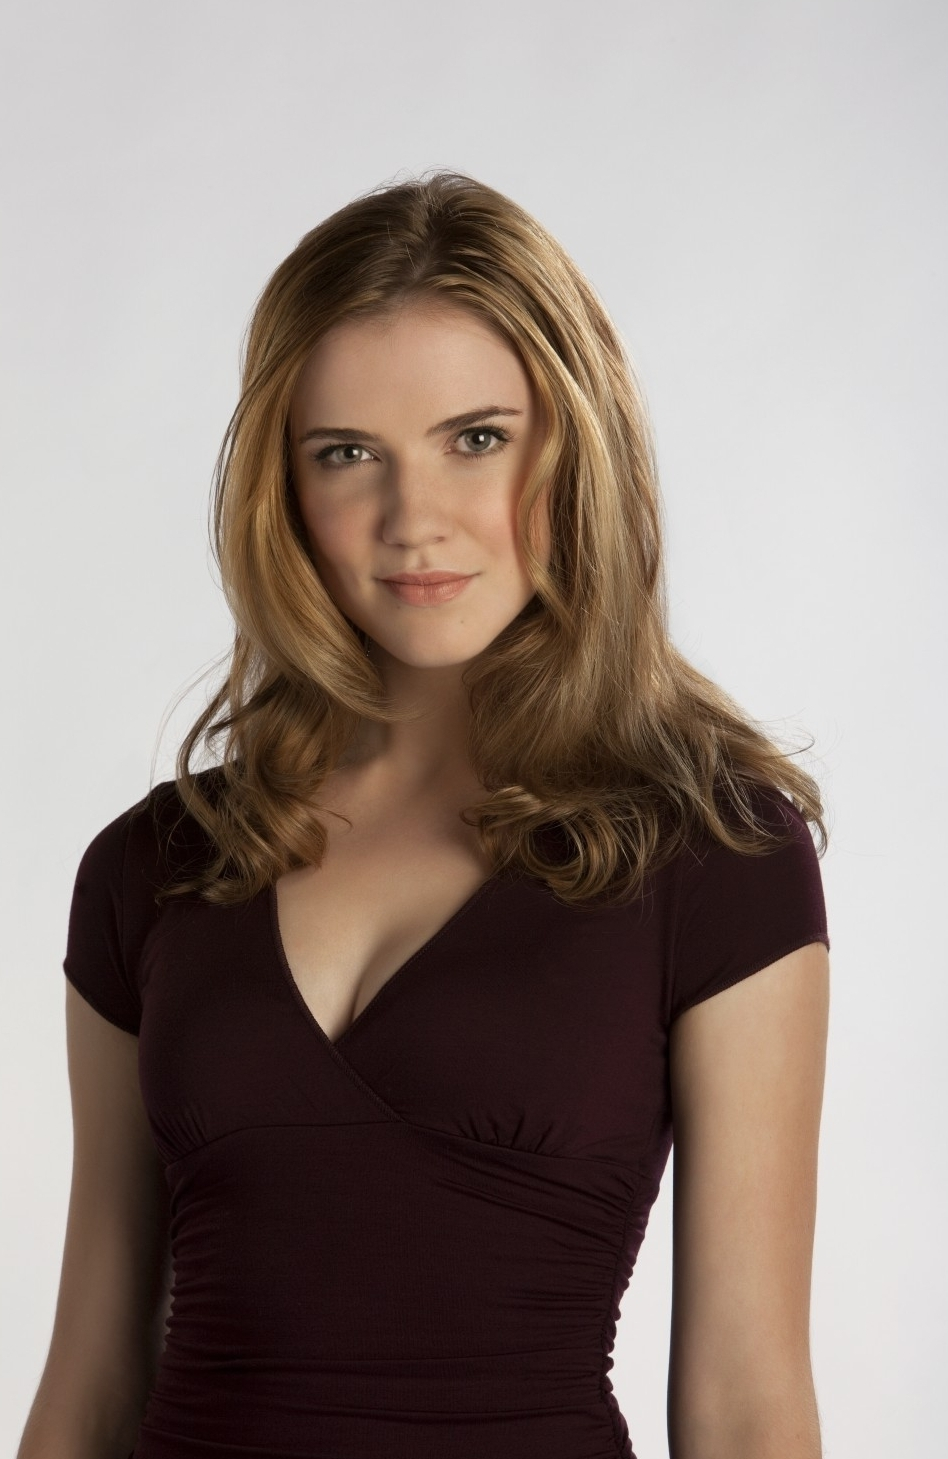 http://images2.fanpop.com/image/photos/9300000/Sara-Canning-as-Jenna-Sommers-the-vampire-diaries-tv-show-9353027-948-1459.jpg